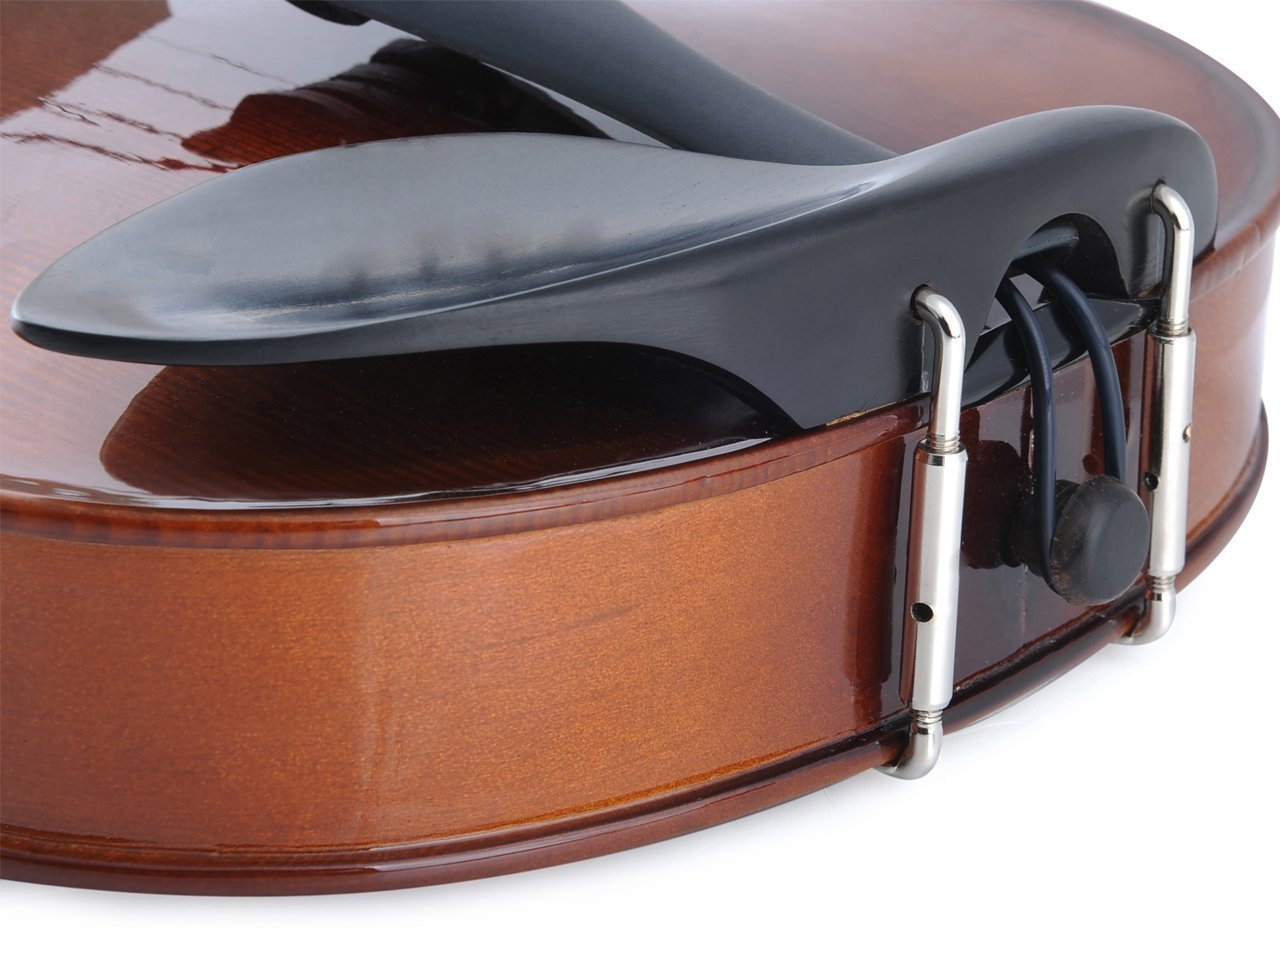 ADM Acoustic Violin 1/2 Size with Hard Case, Beginner Pack for Student, Red Brown by ADM (Image #7)